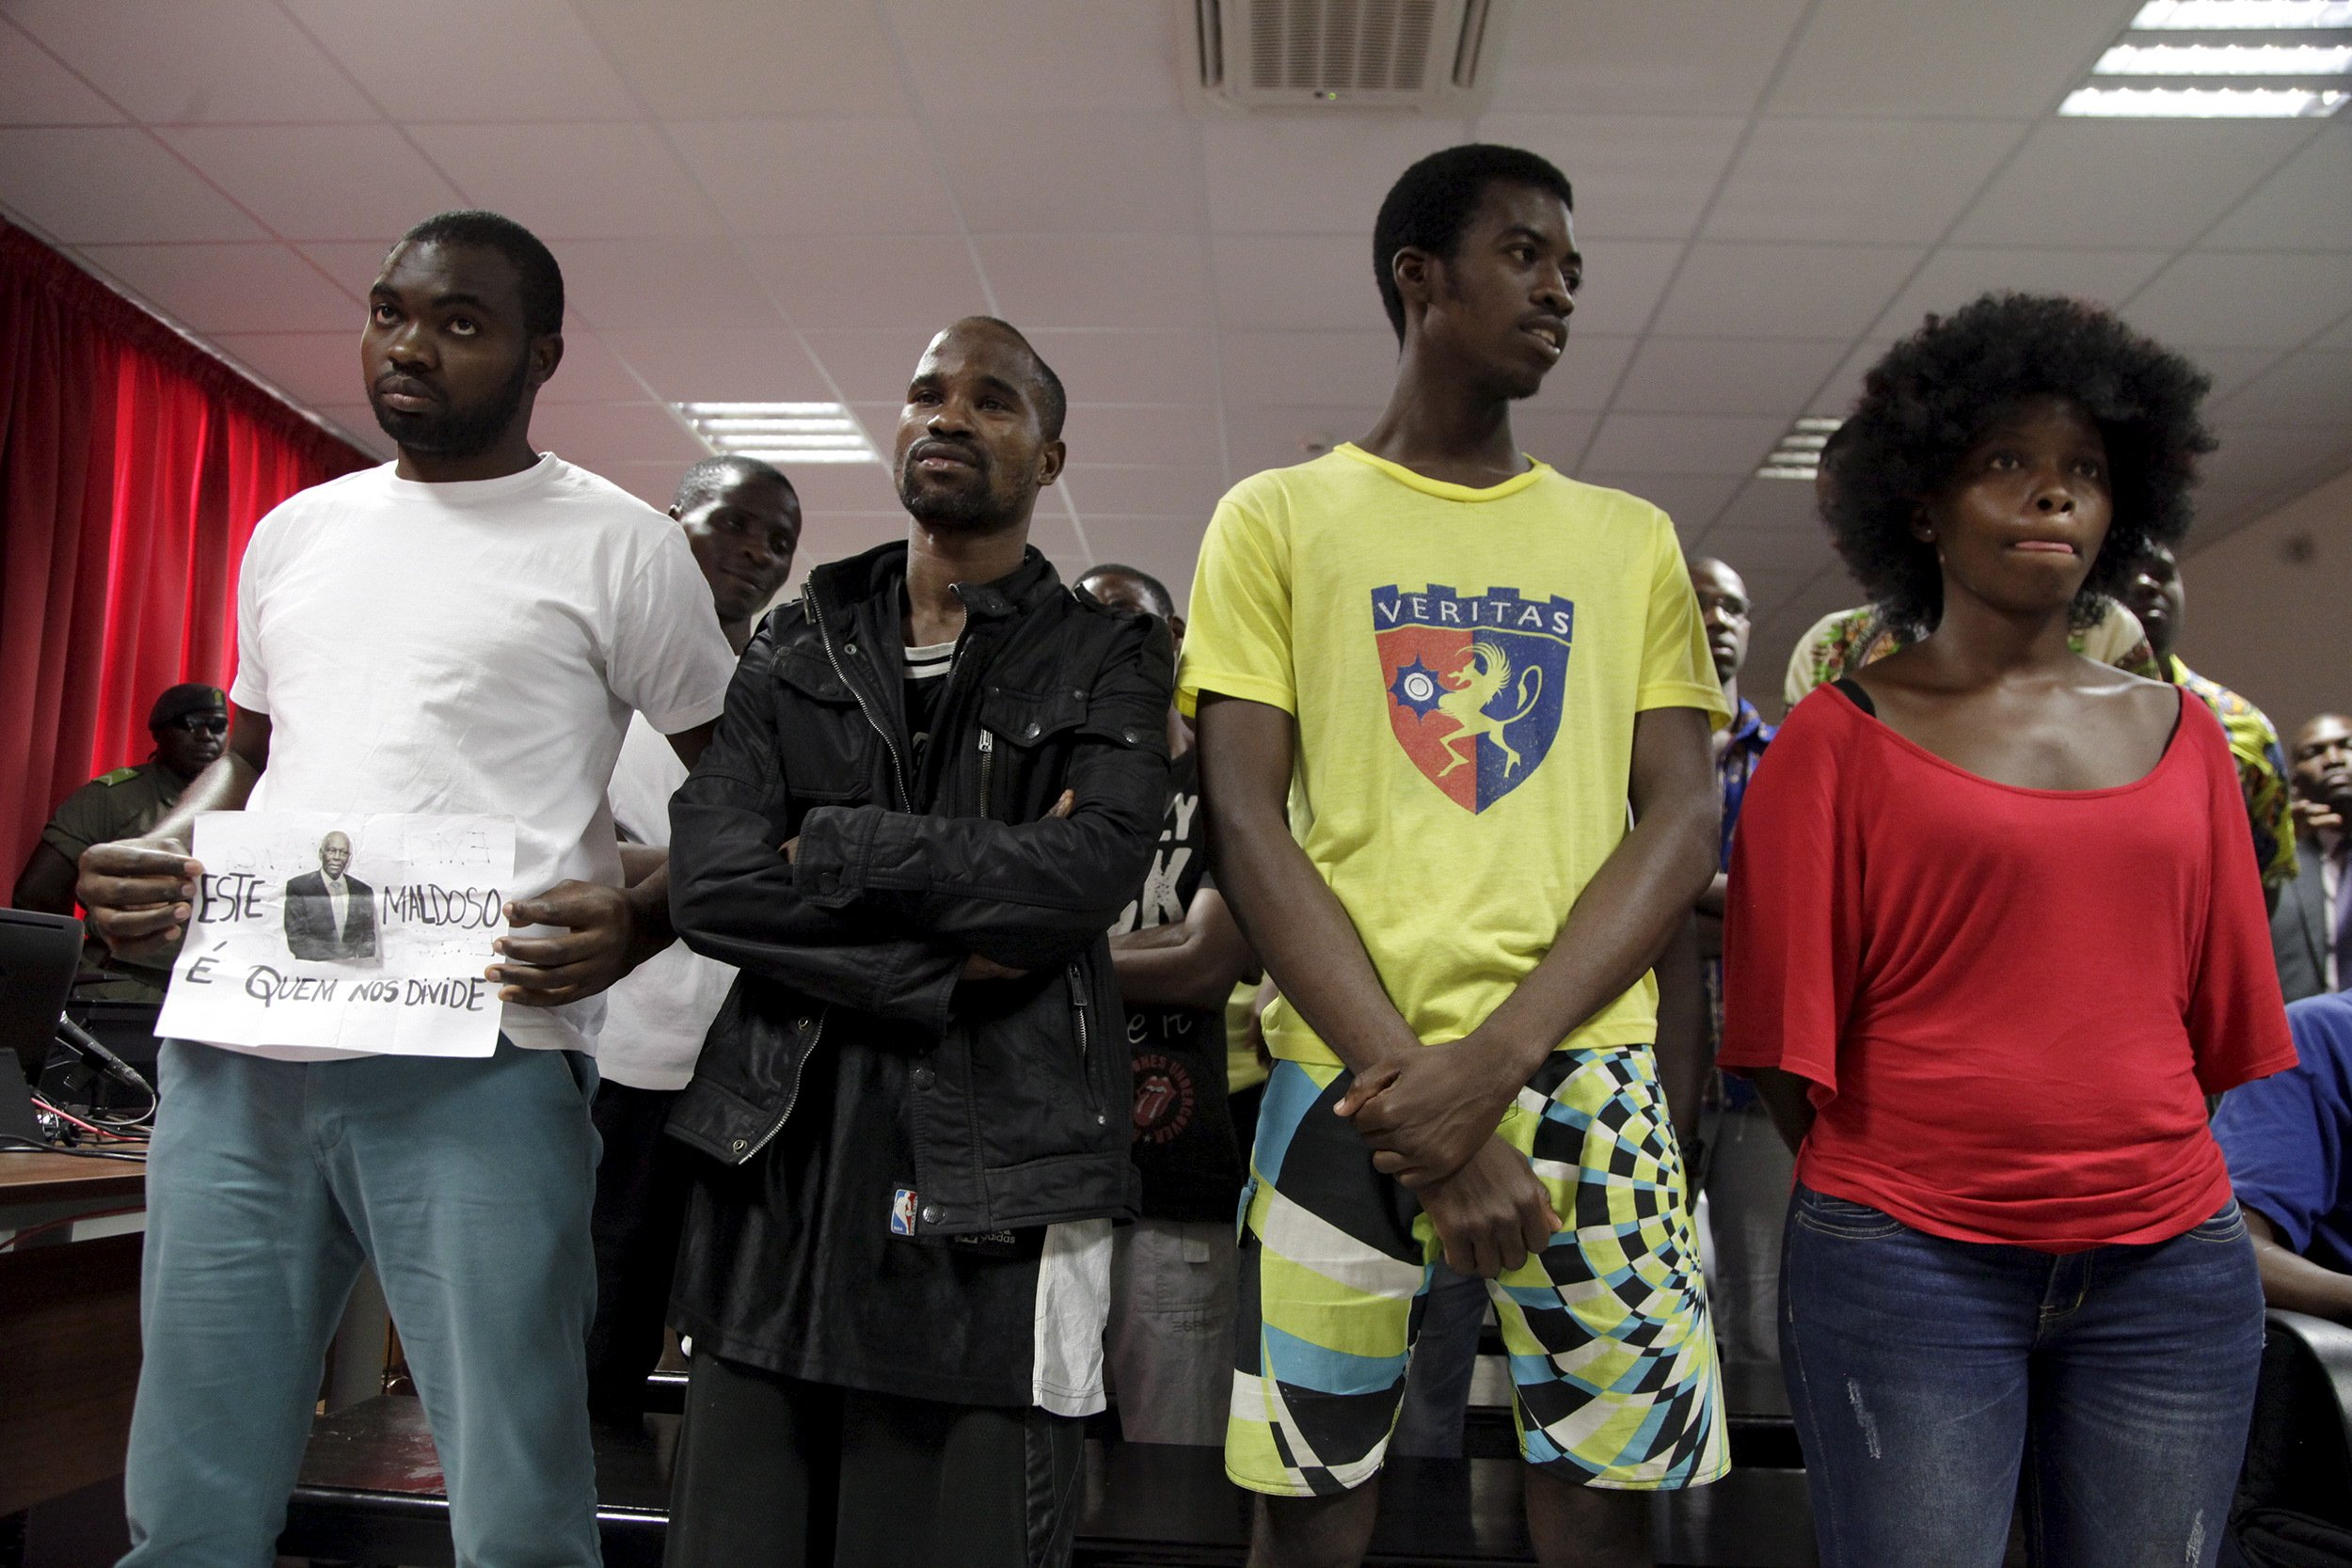 Angolan youth activists are sentenced for rebellion.